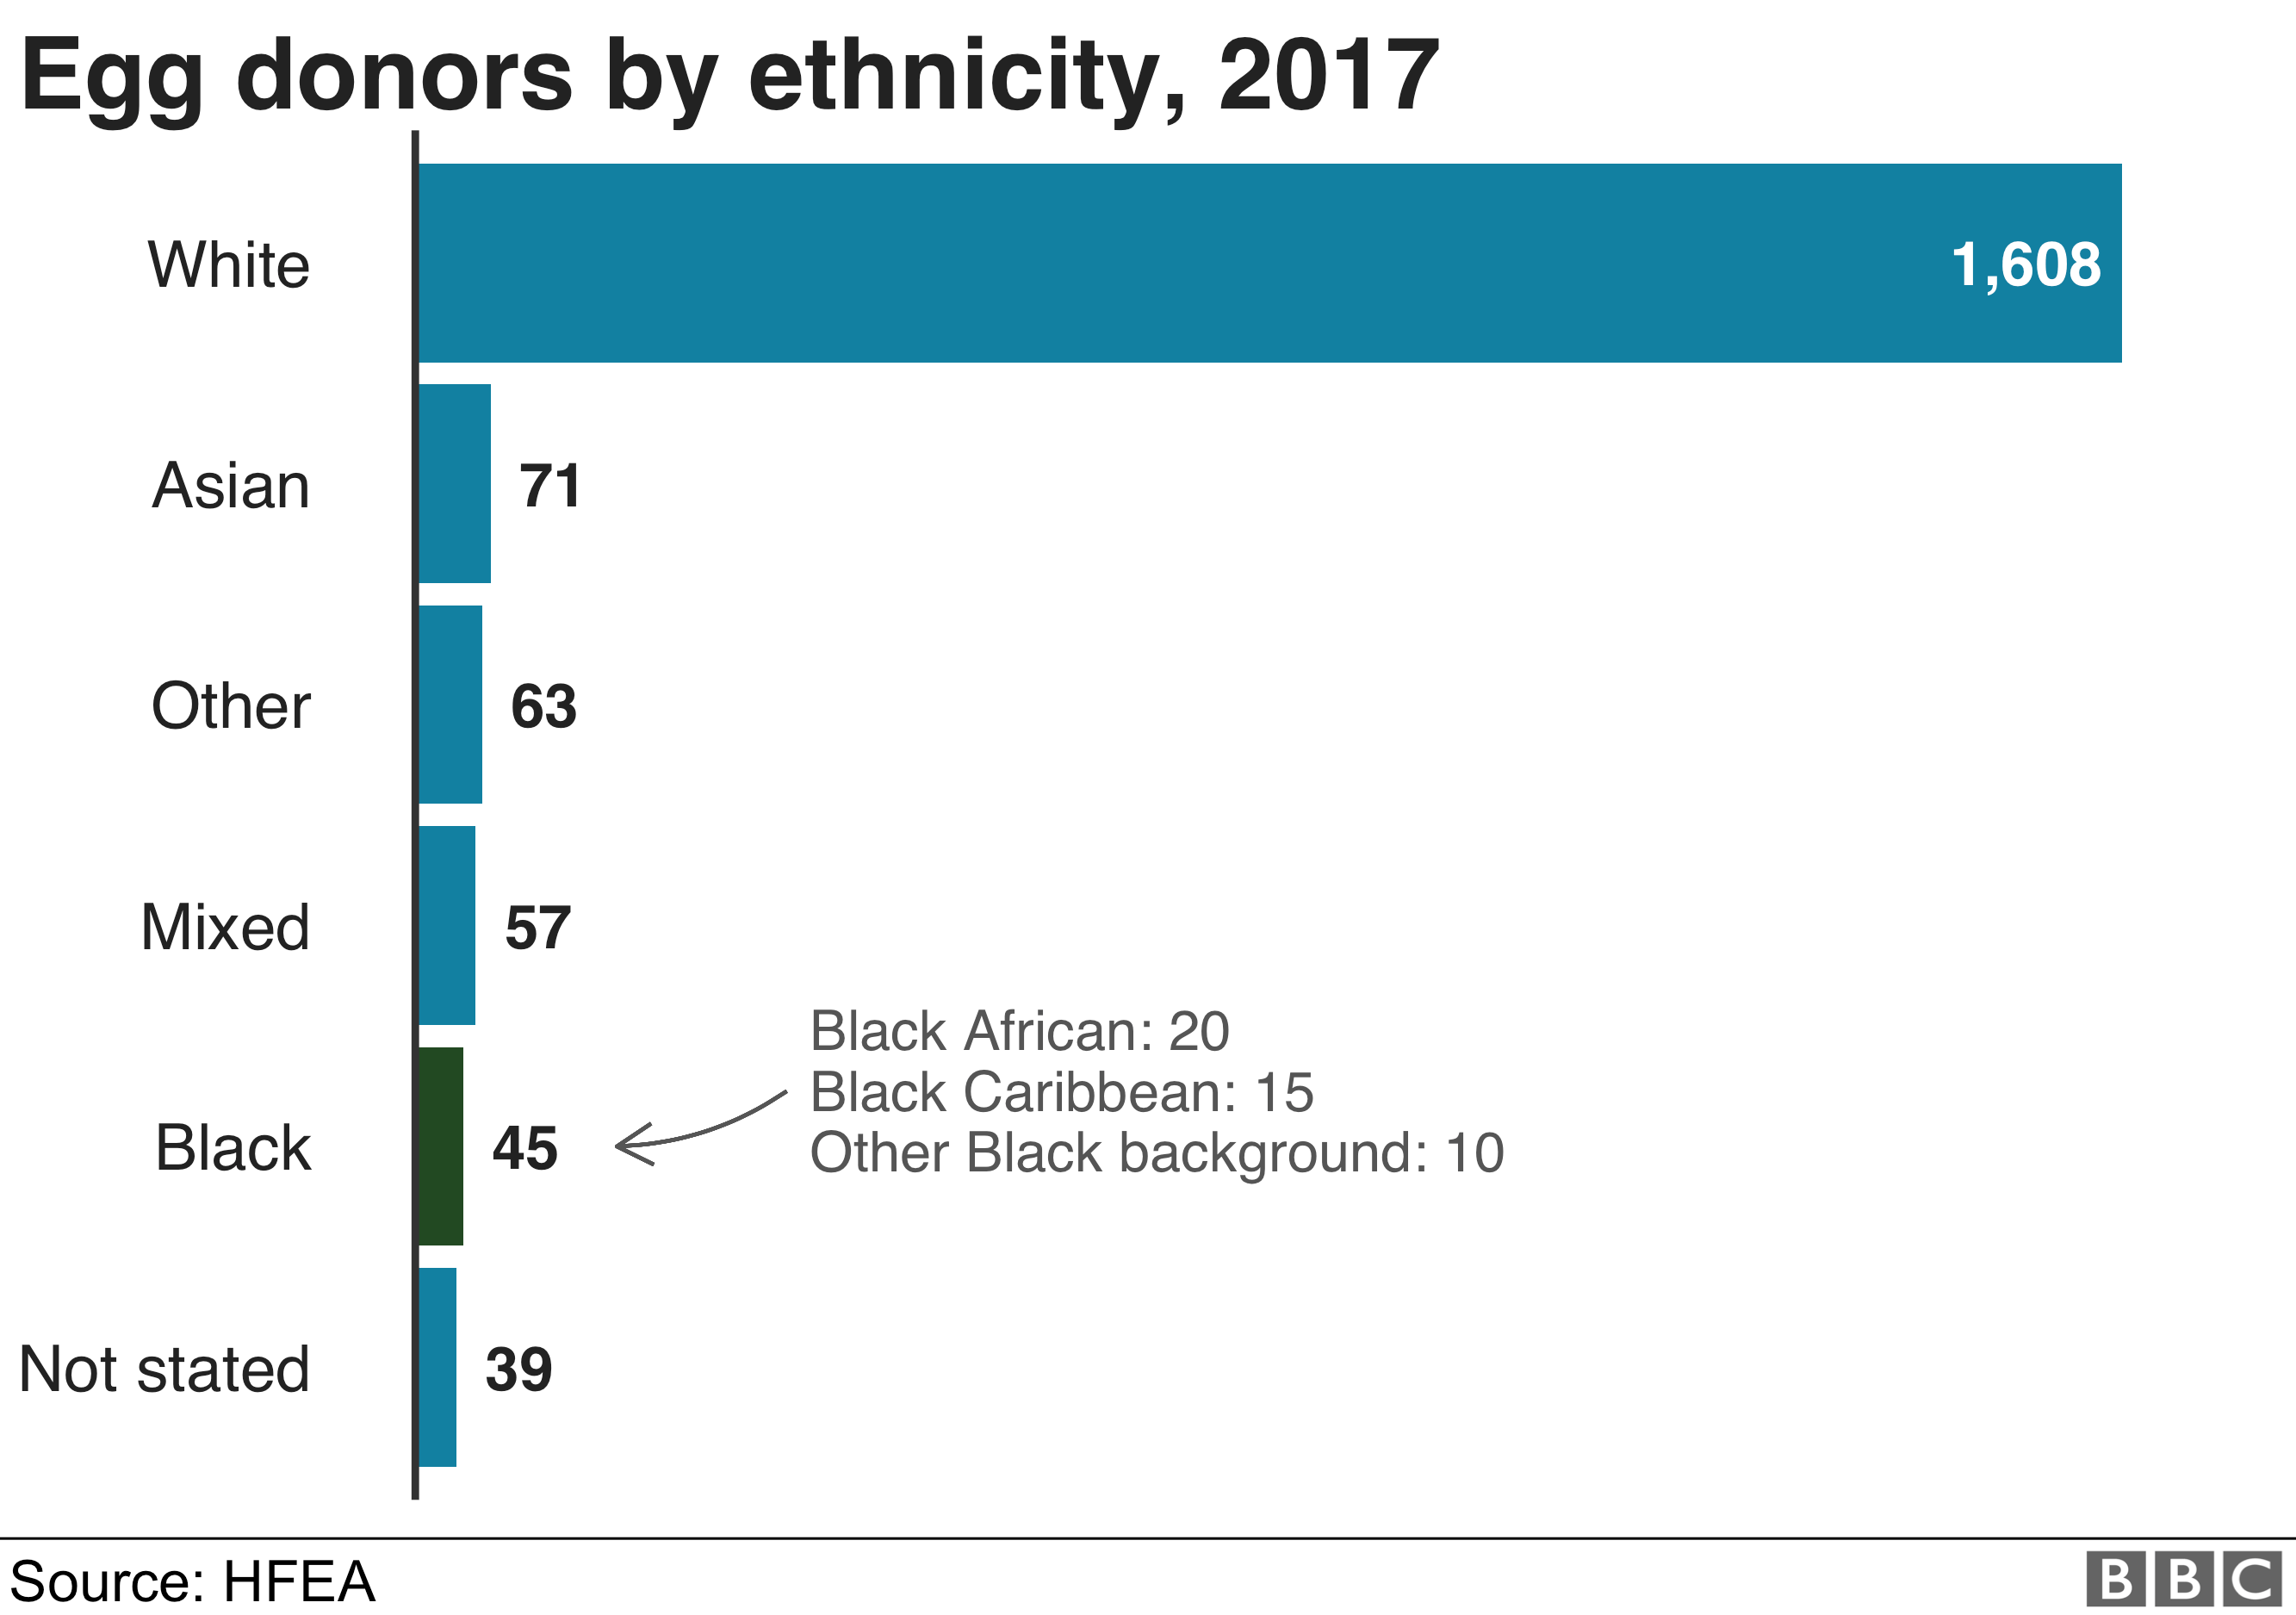 science egg donors by ethnicity